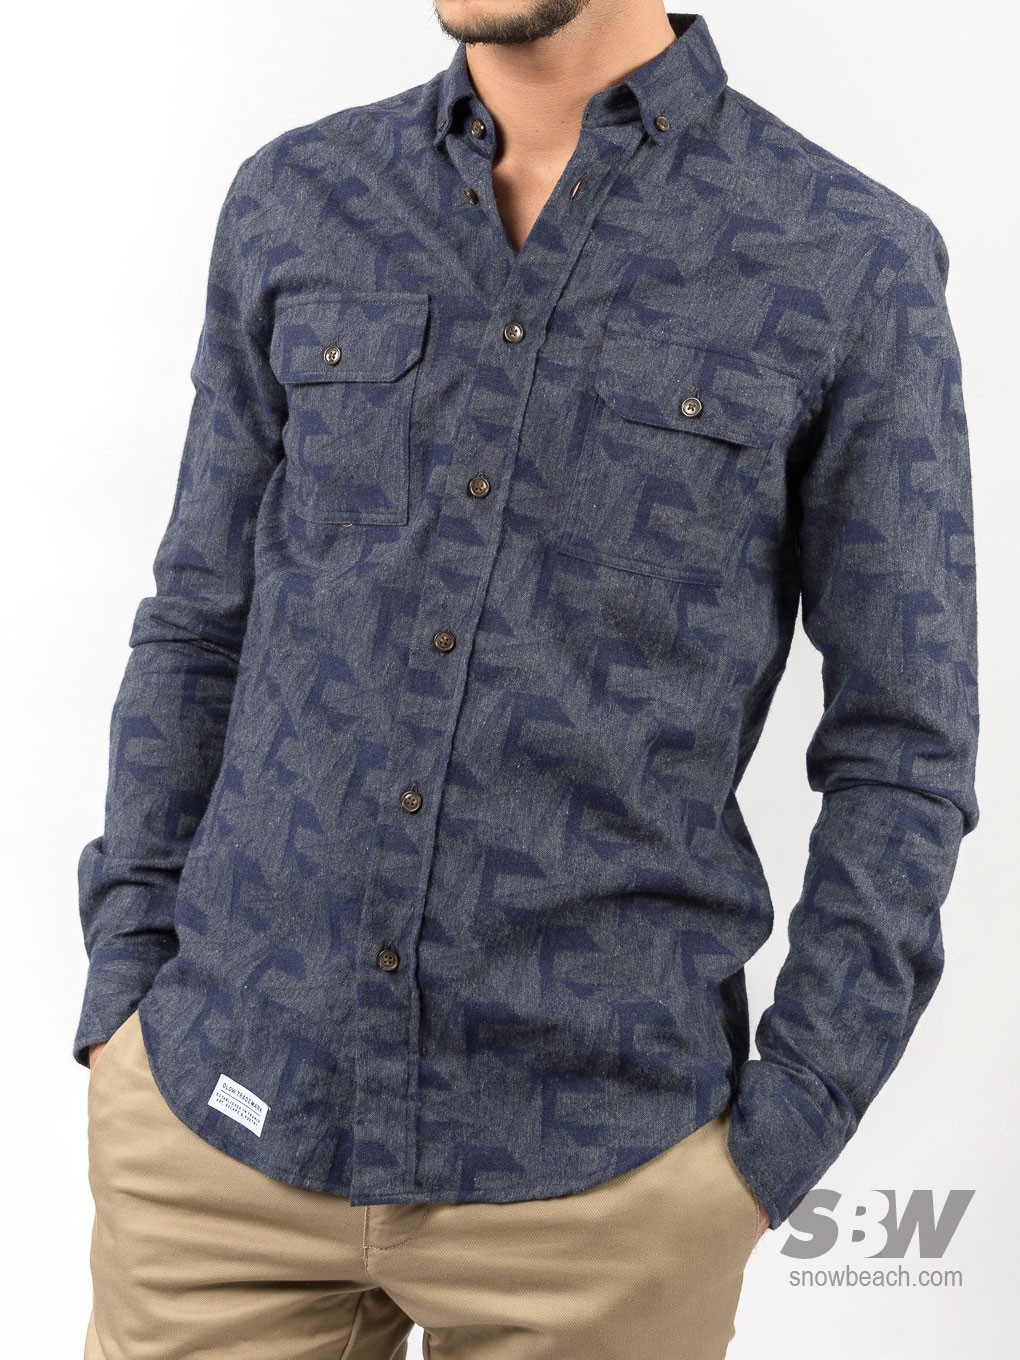 OLOW CHEMISE CHARCOAL FLANELLE motifs